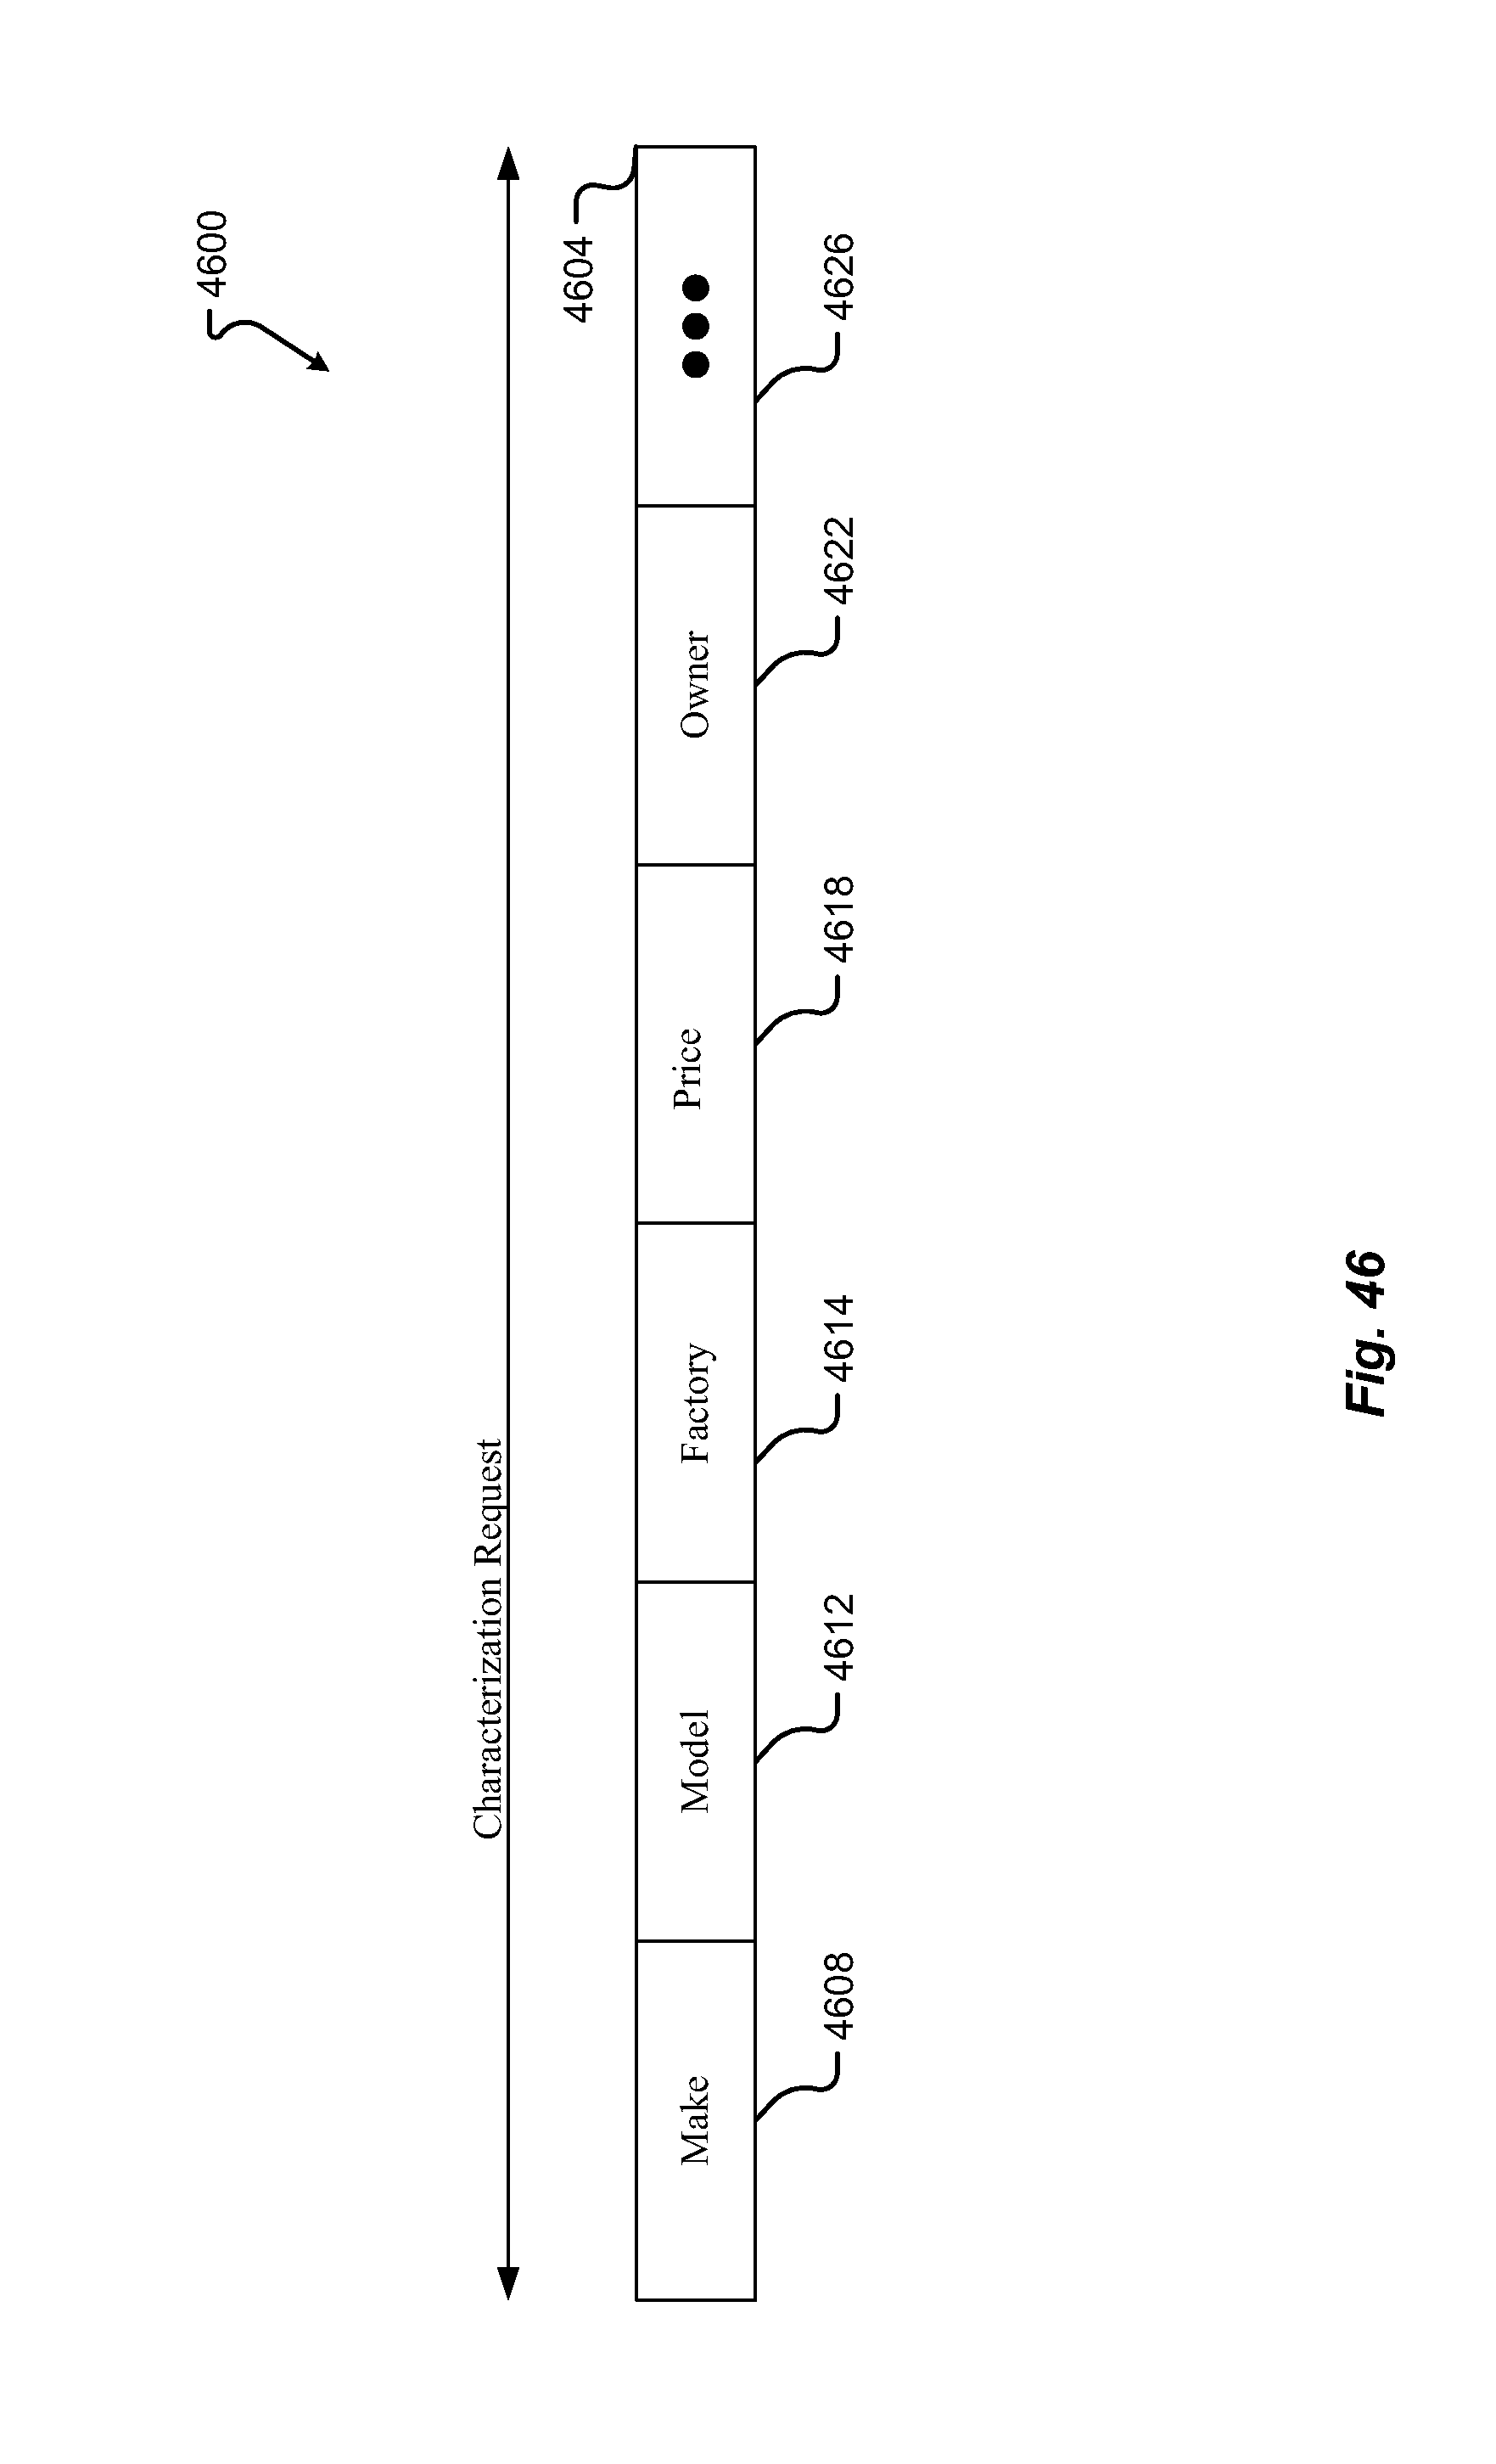 US9536361B2 - Universal vehicle notification system - Google